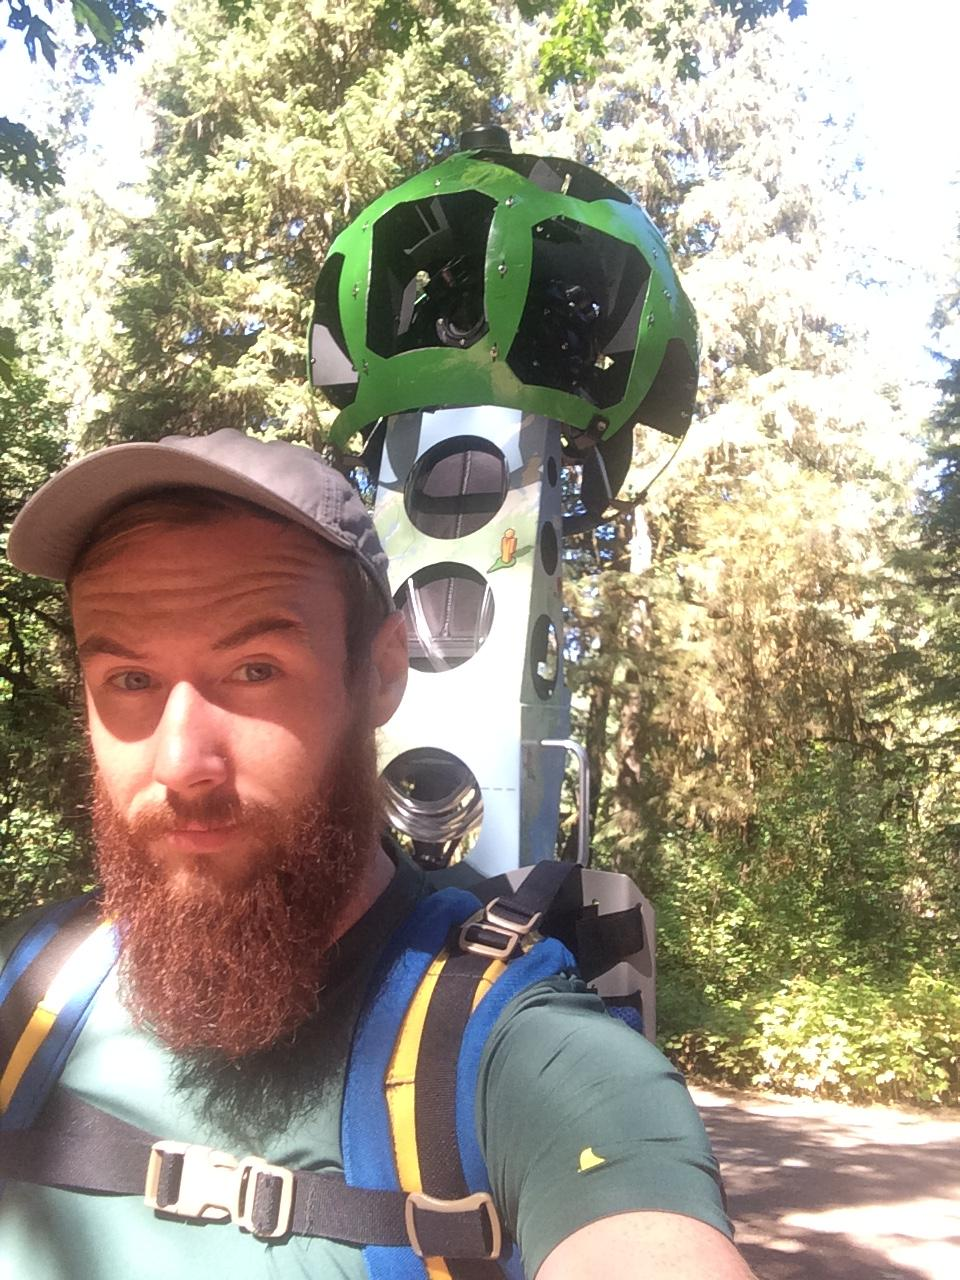 Google Trekker photo had so much interest, here's my stupid face wearing one.